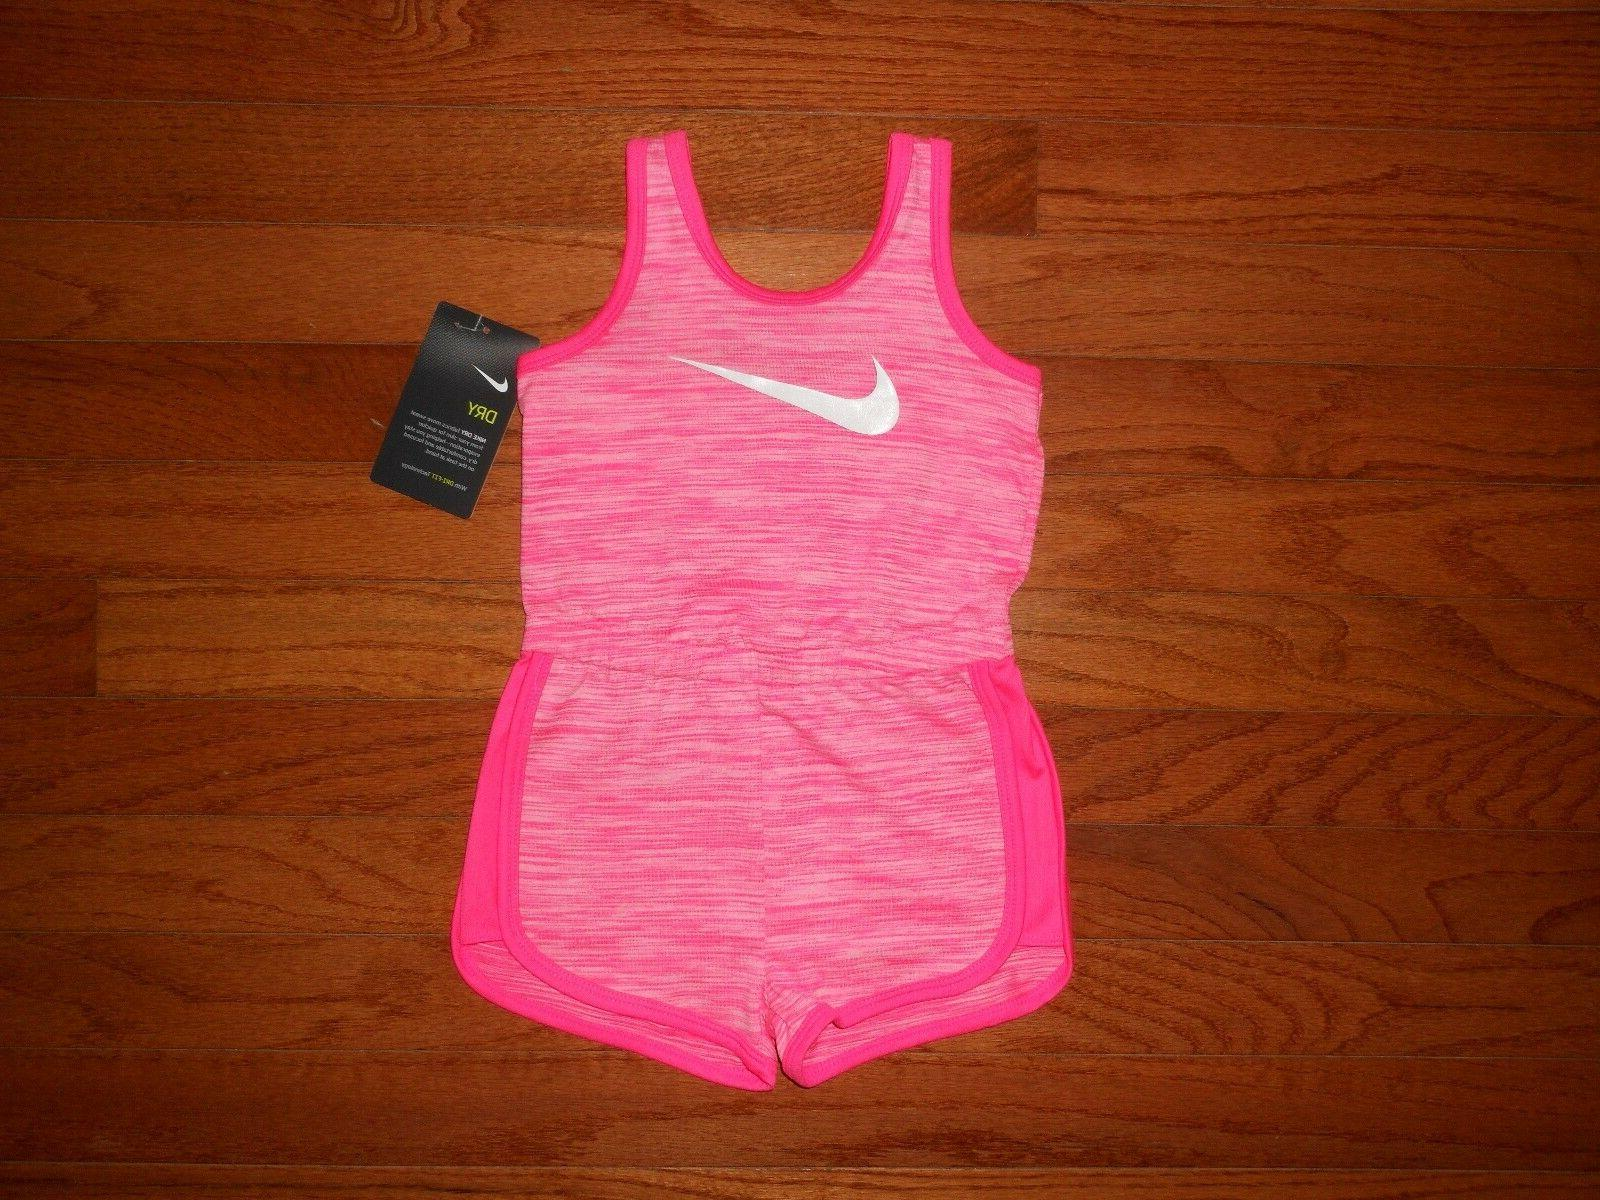 NWT Nike Little Girls romper outfit, Size  12M 24M 2T 4T 5 6